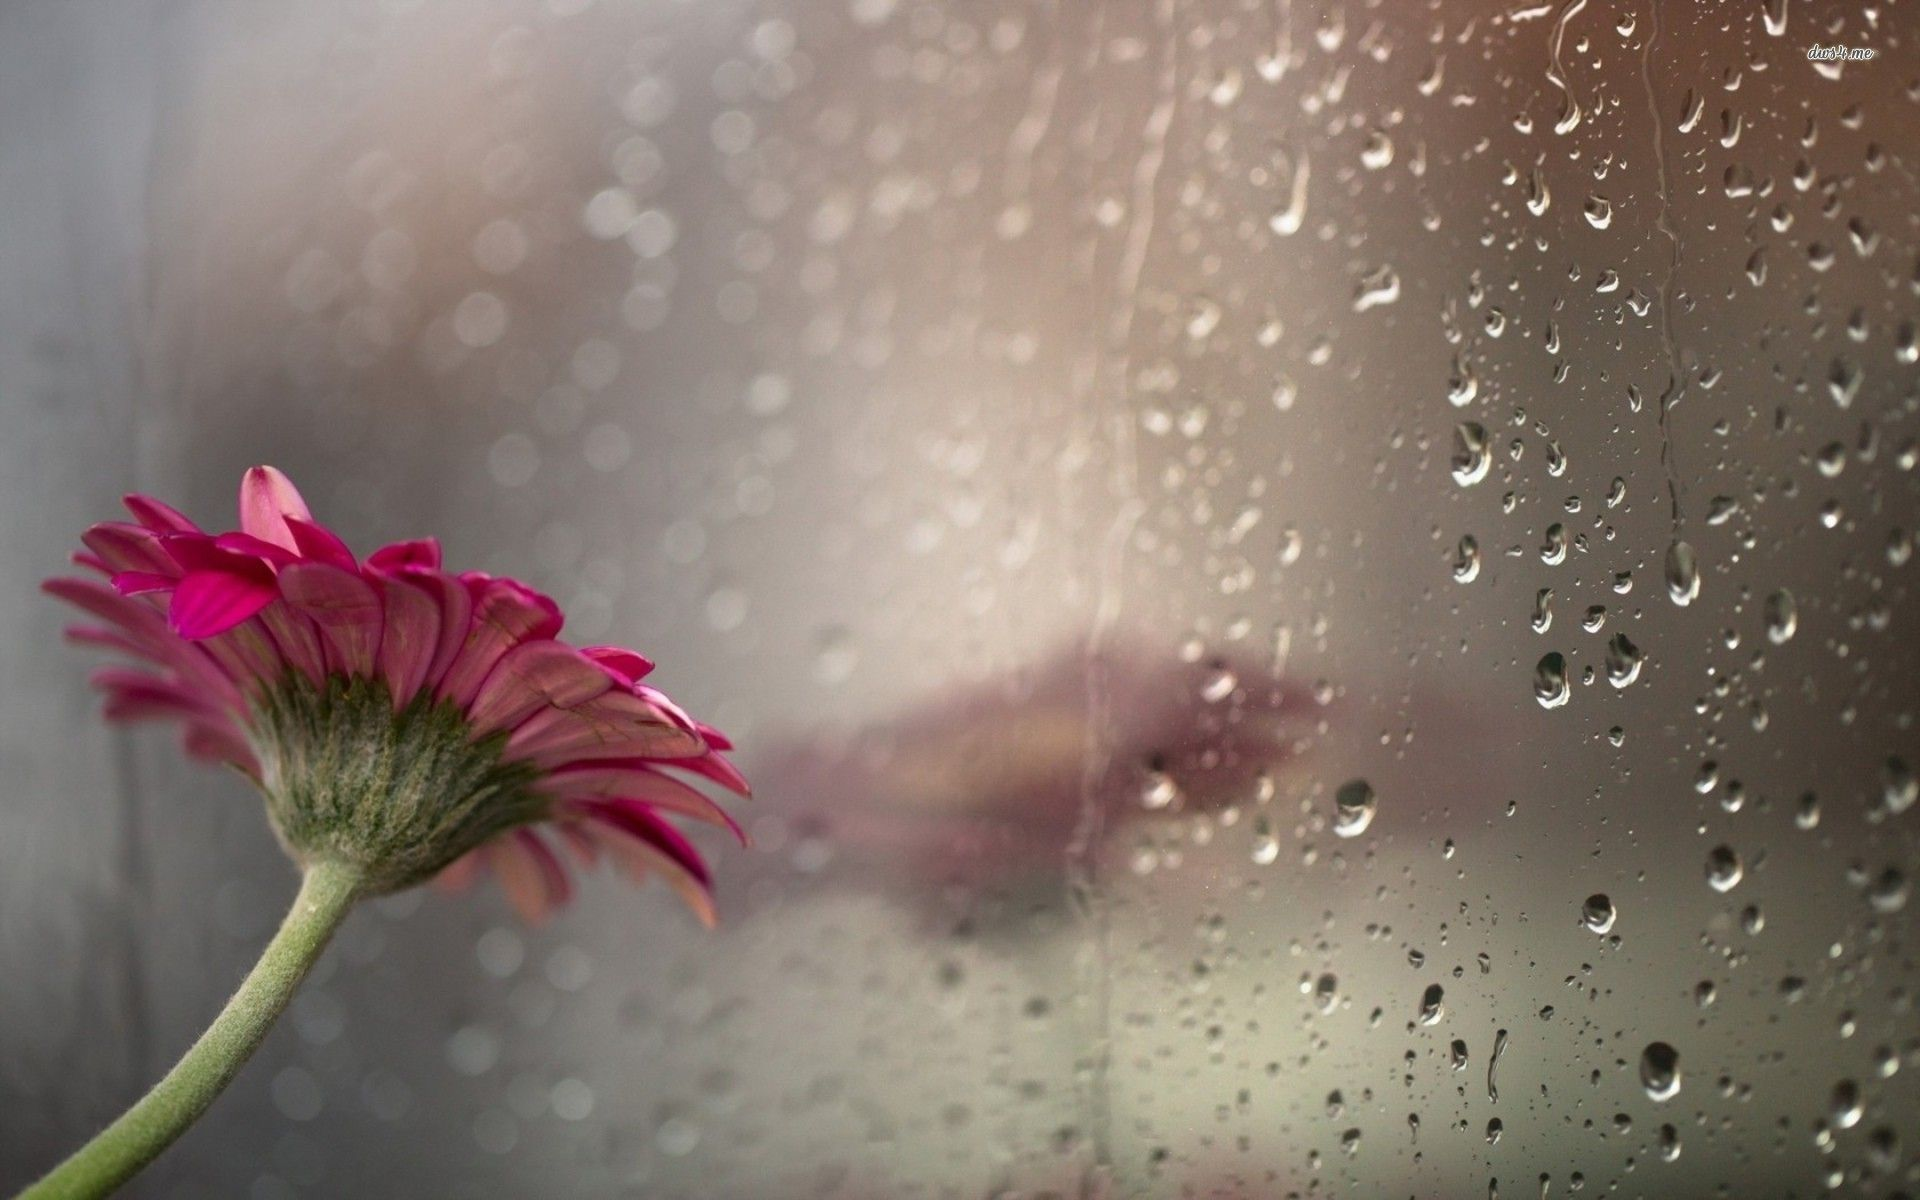 Rainy window wallpapers wallpaper 19201200 rainy pictures rainy window wallpapers wallpaper 19201200 rainy pictures wallpapers 37 wallpapers adorable altavistaventures Image collections